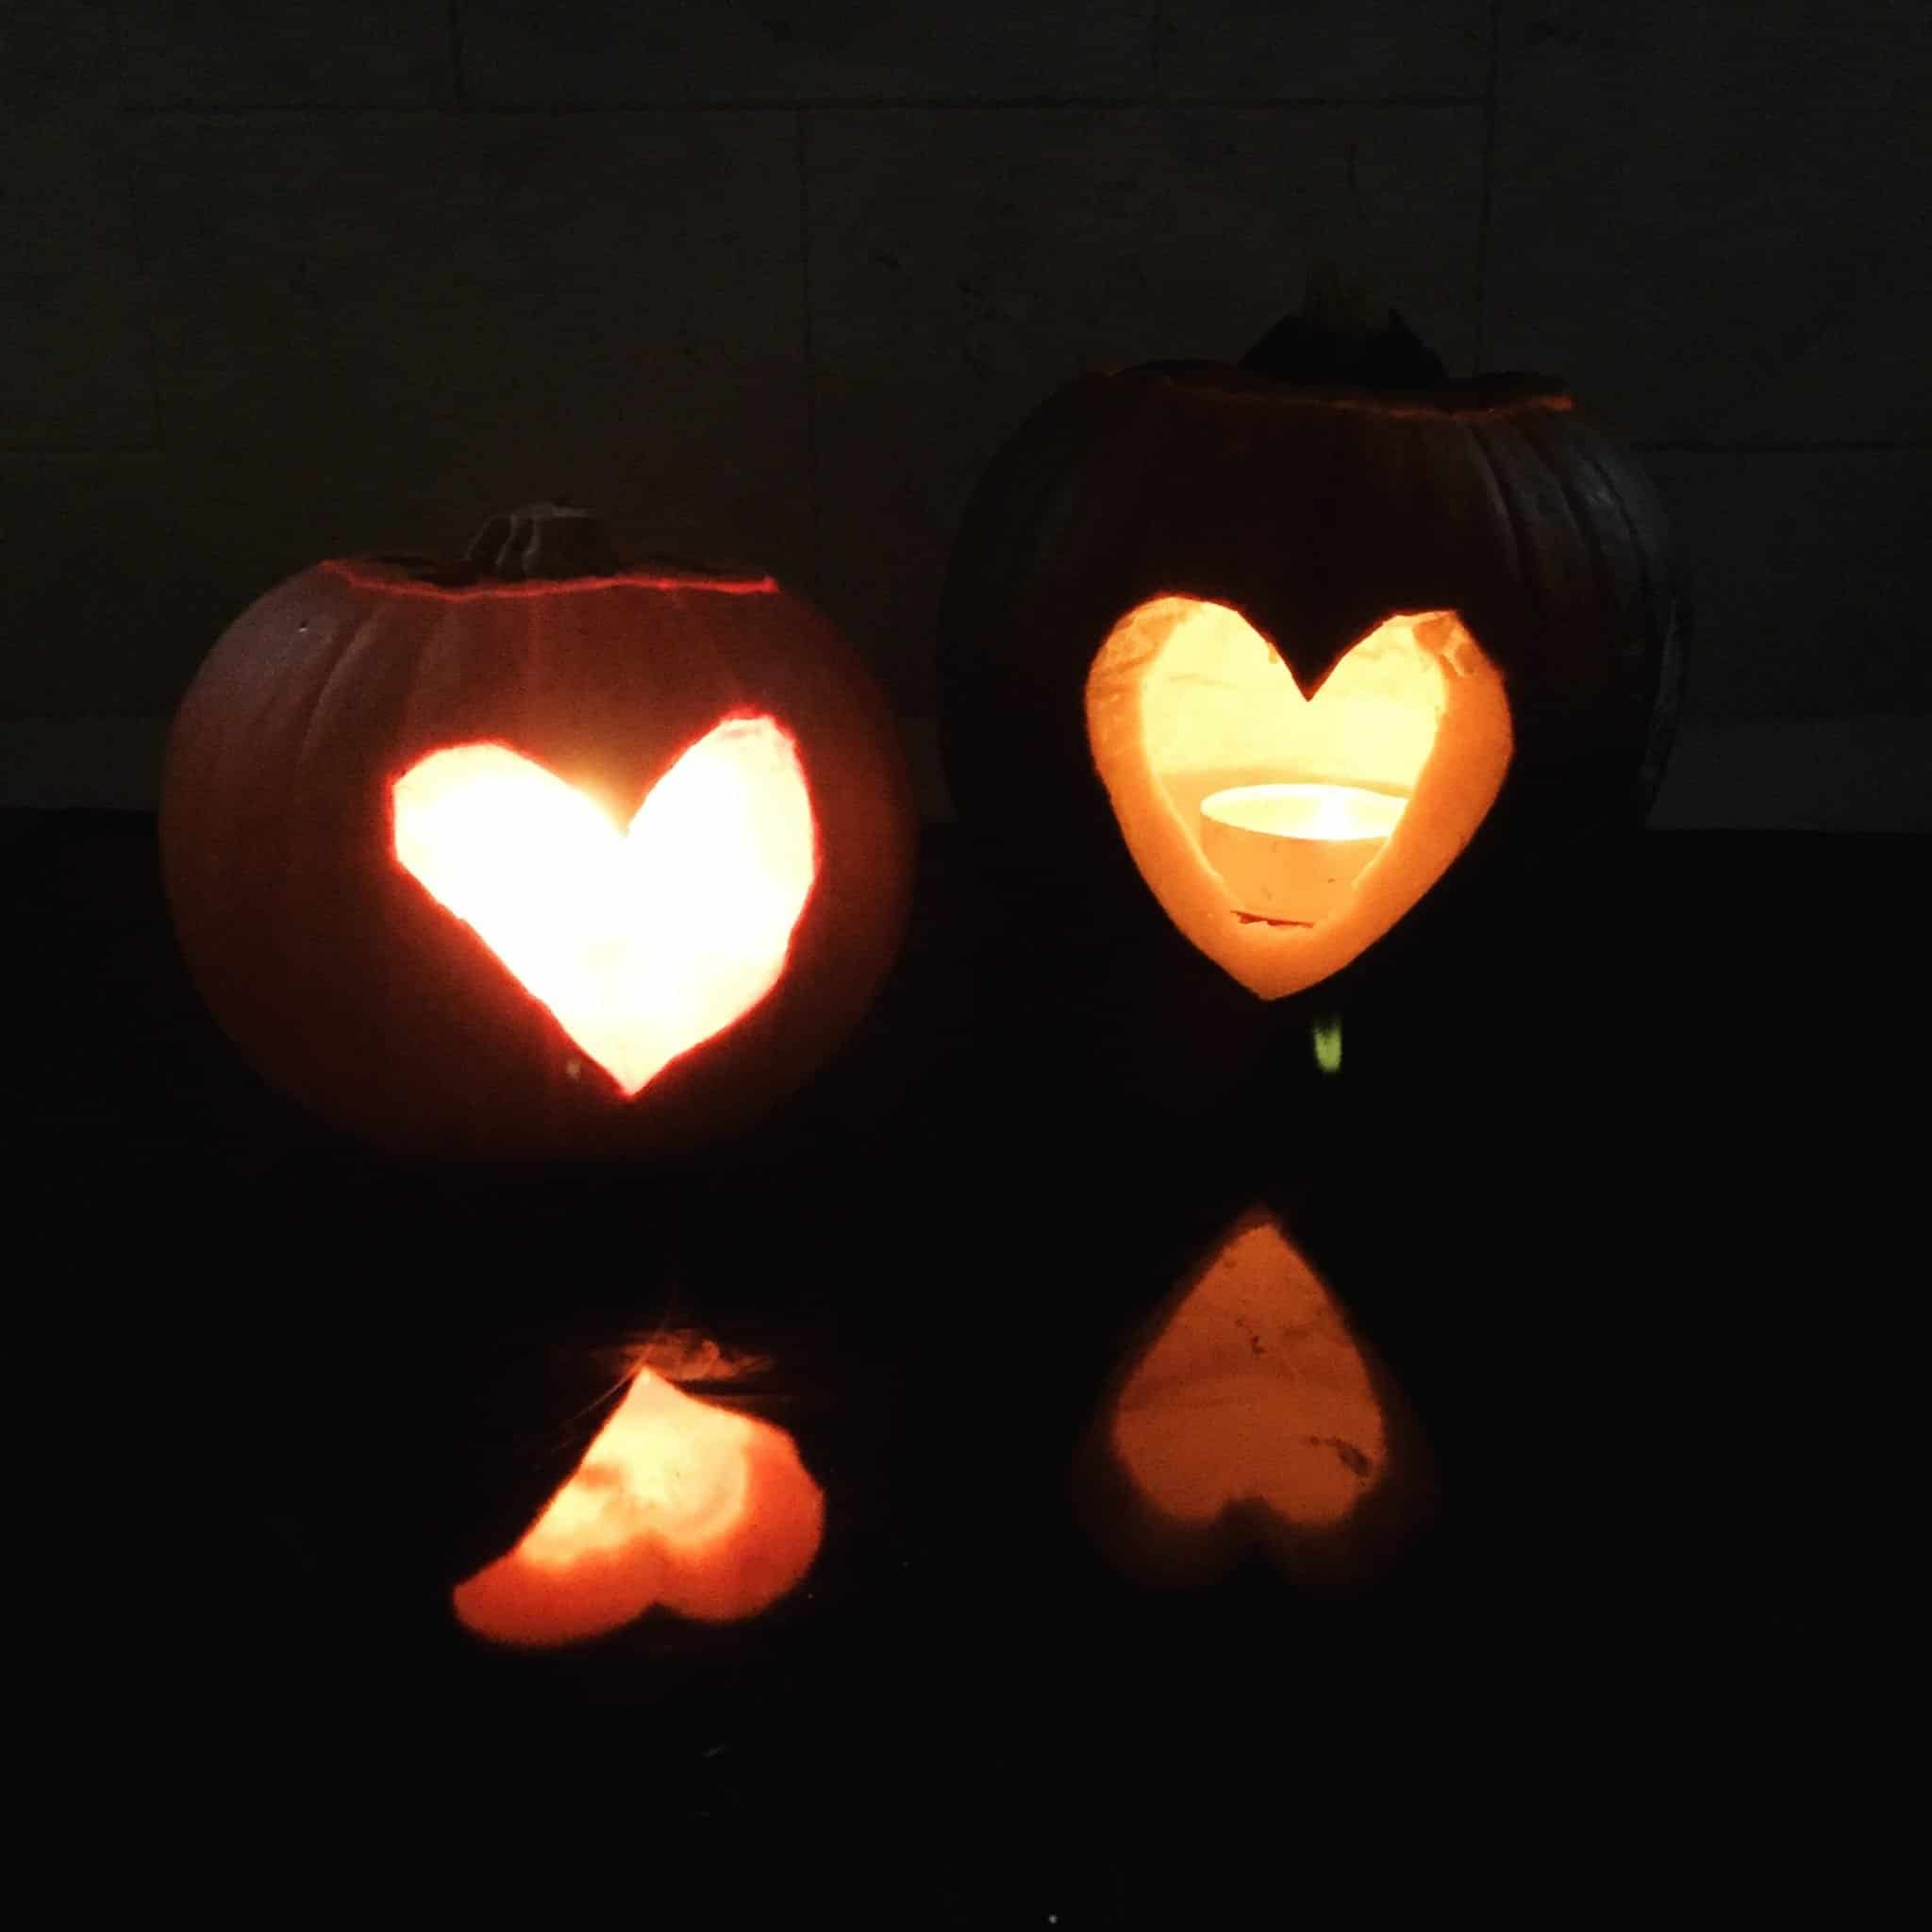 An alternative halloween with world vision 39 s carve a heart campaign pinkscharming - Charming halloween decoration using love pumpkin carving ...